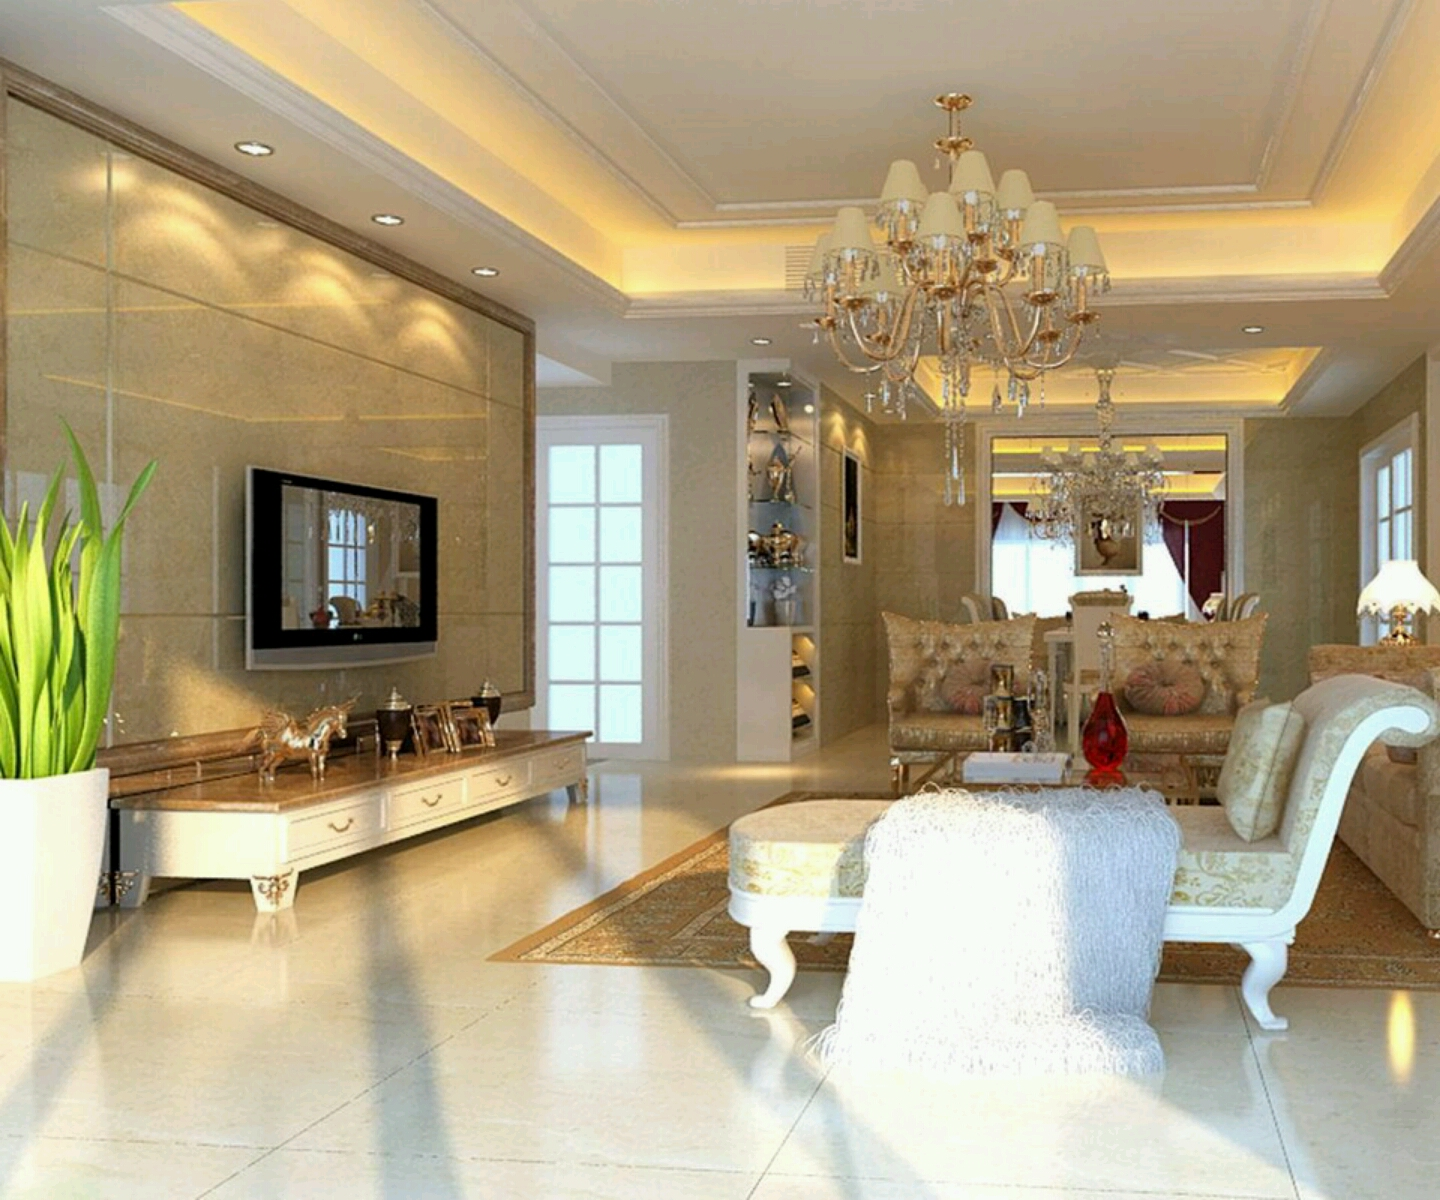 new home designs latest luxury homes interior decoration modern islamic interior design cas